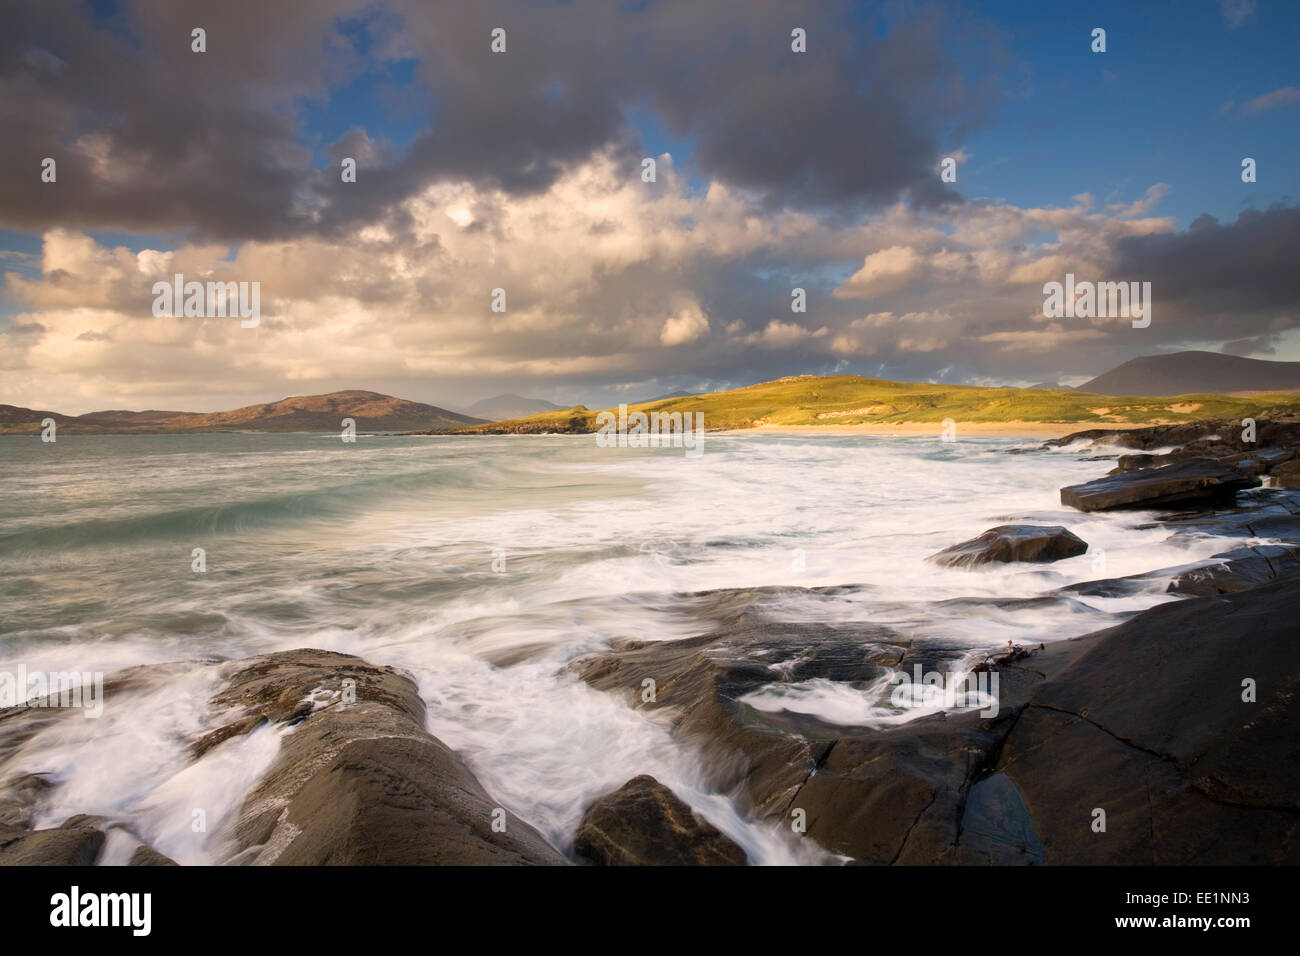 A view looking out across The Sound of Taransay, The Isle of Harris, Scotland. - Stock Image